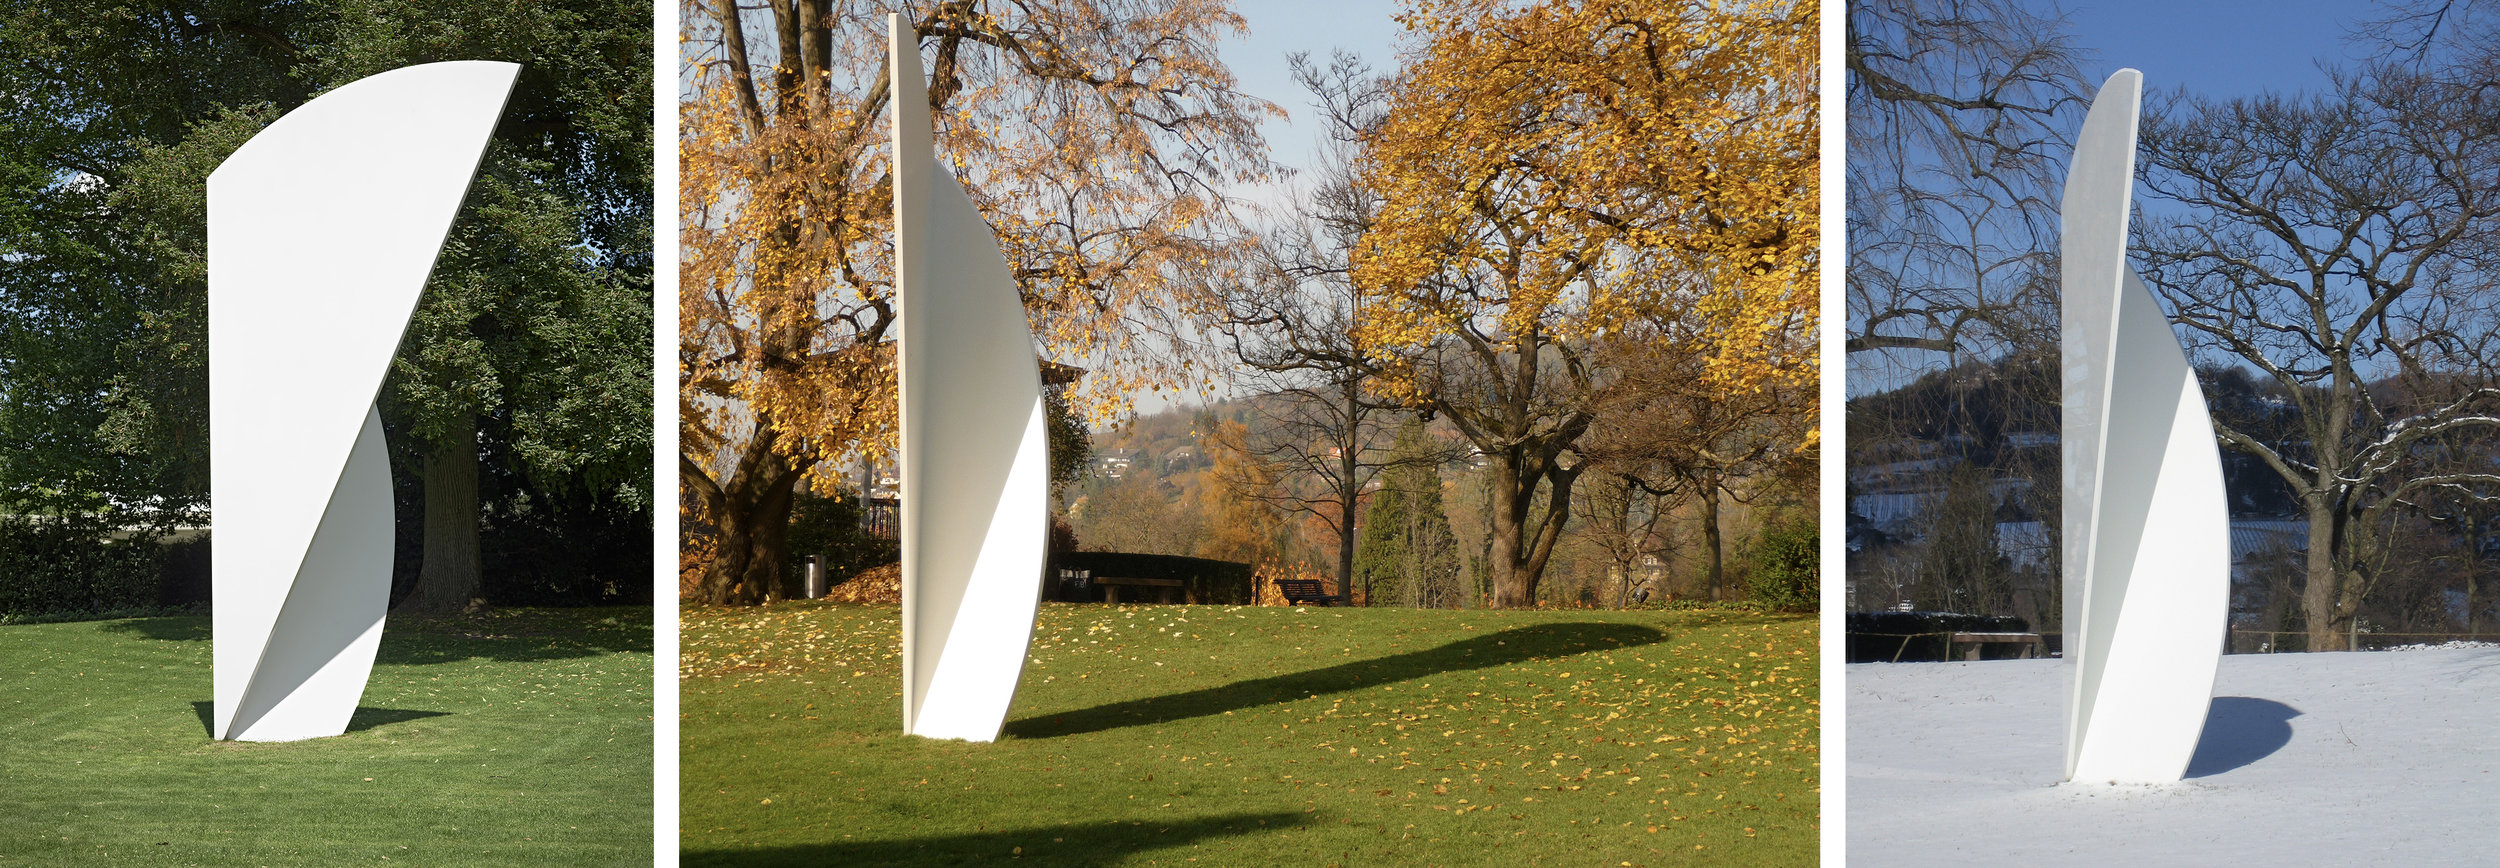 Ellsworth Kelly  White Curves 2001 (EK903) Aluminum, coated with polyurethane  234 x 131.875 x 49.5 inches      View More Ellsworth Kelly